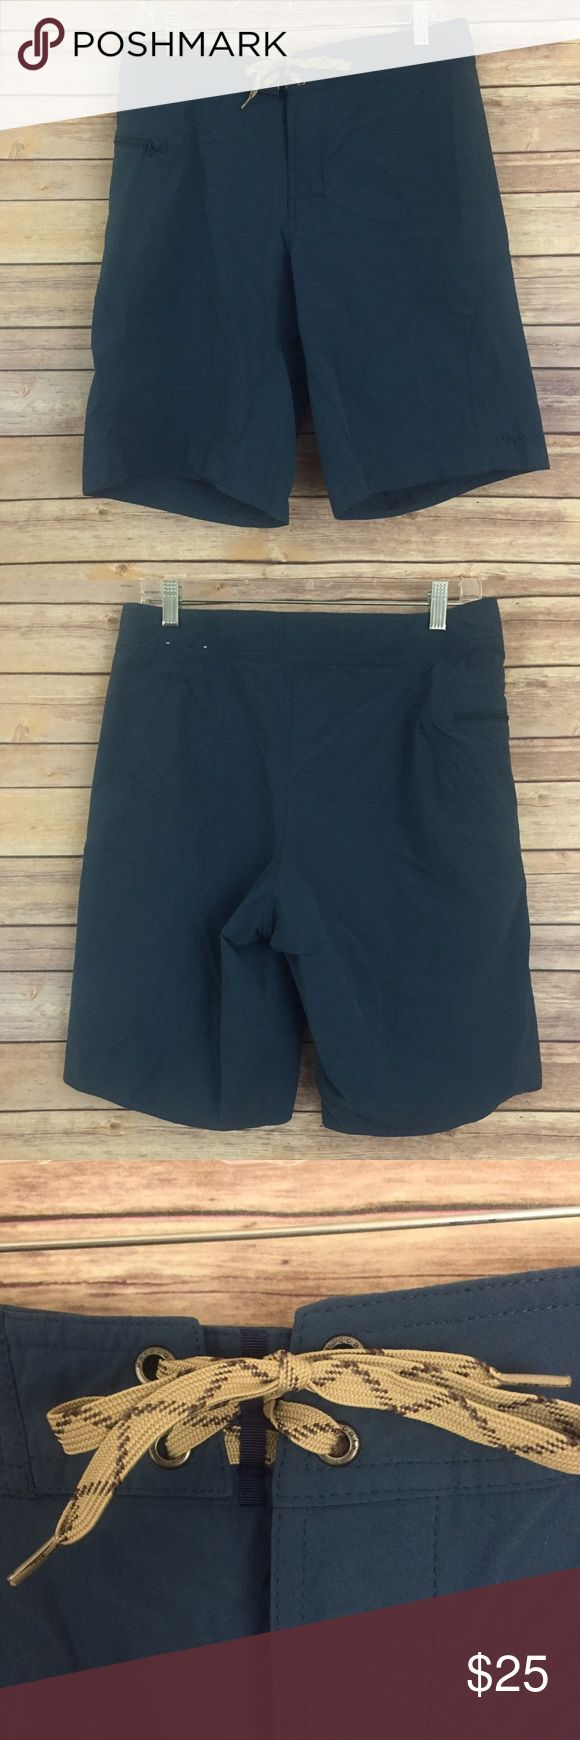 Men's Patagonia outdoor shorts size 32 These men's Patagonia outdoor shorts are a dark teal blue color and are a size 32.  They are in excellent pre owned condition. Patagonia Shorts